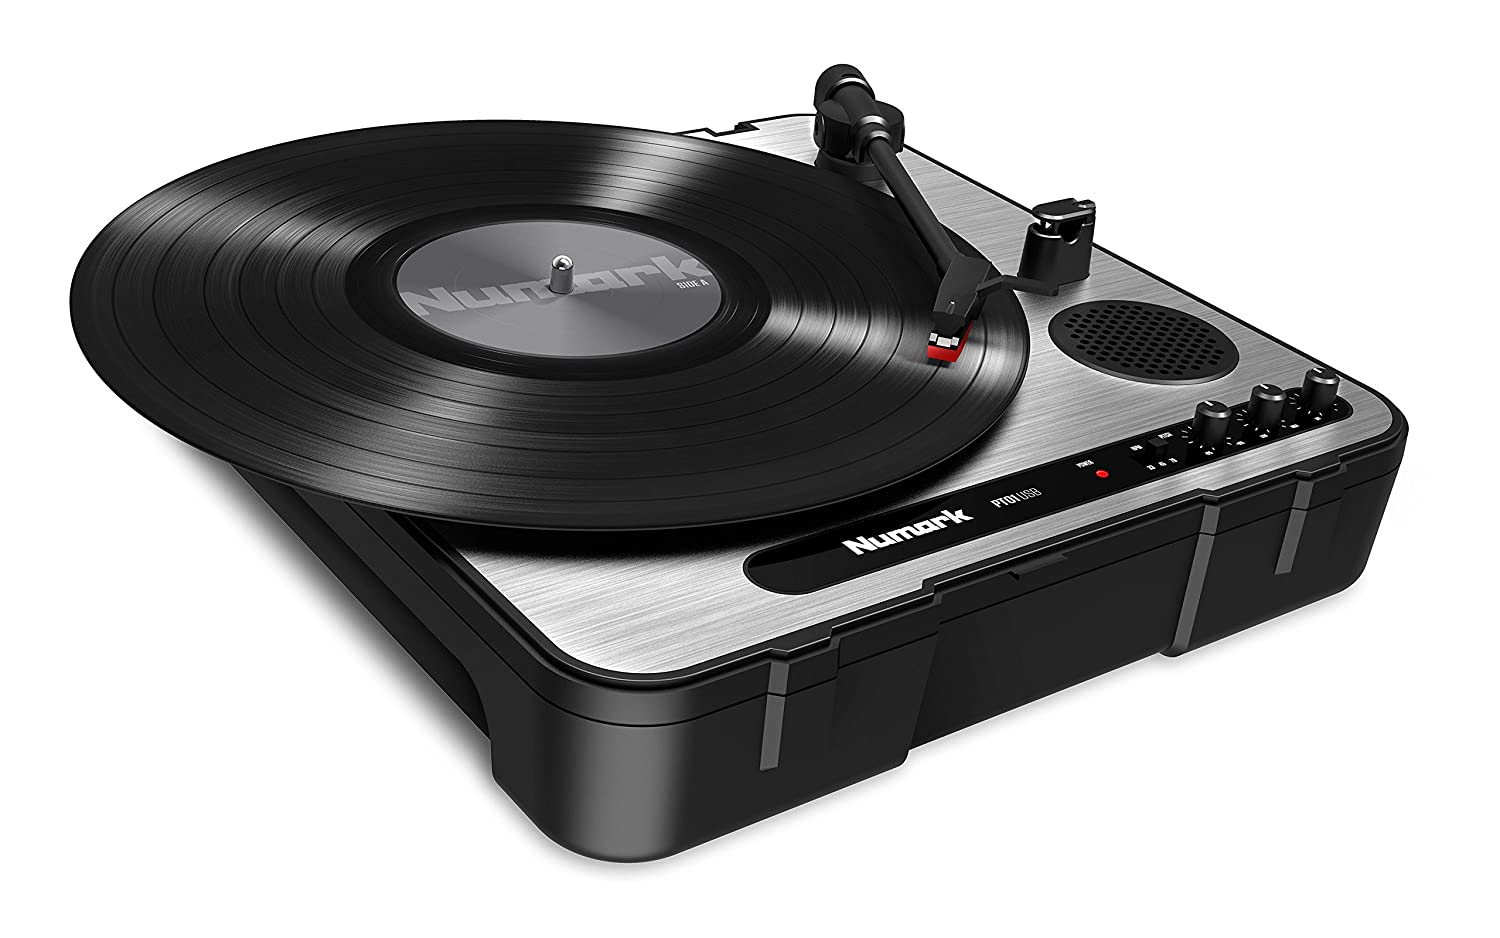 Numark PT01USB Turntable B0086ENYA0 Accessory Consumer Accessories